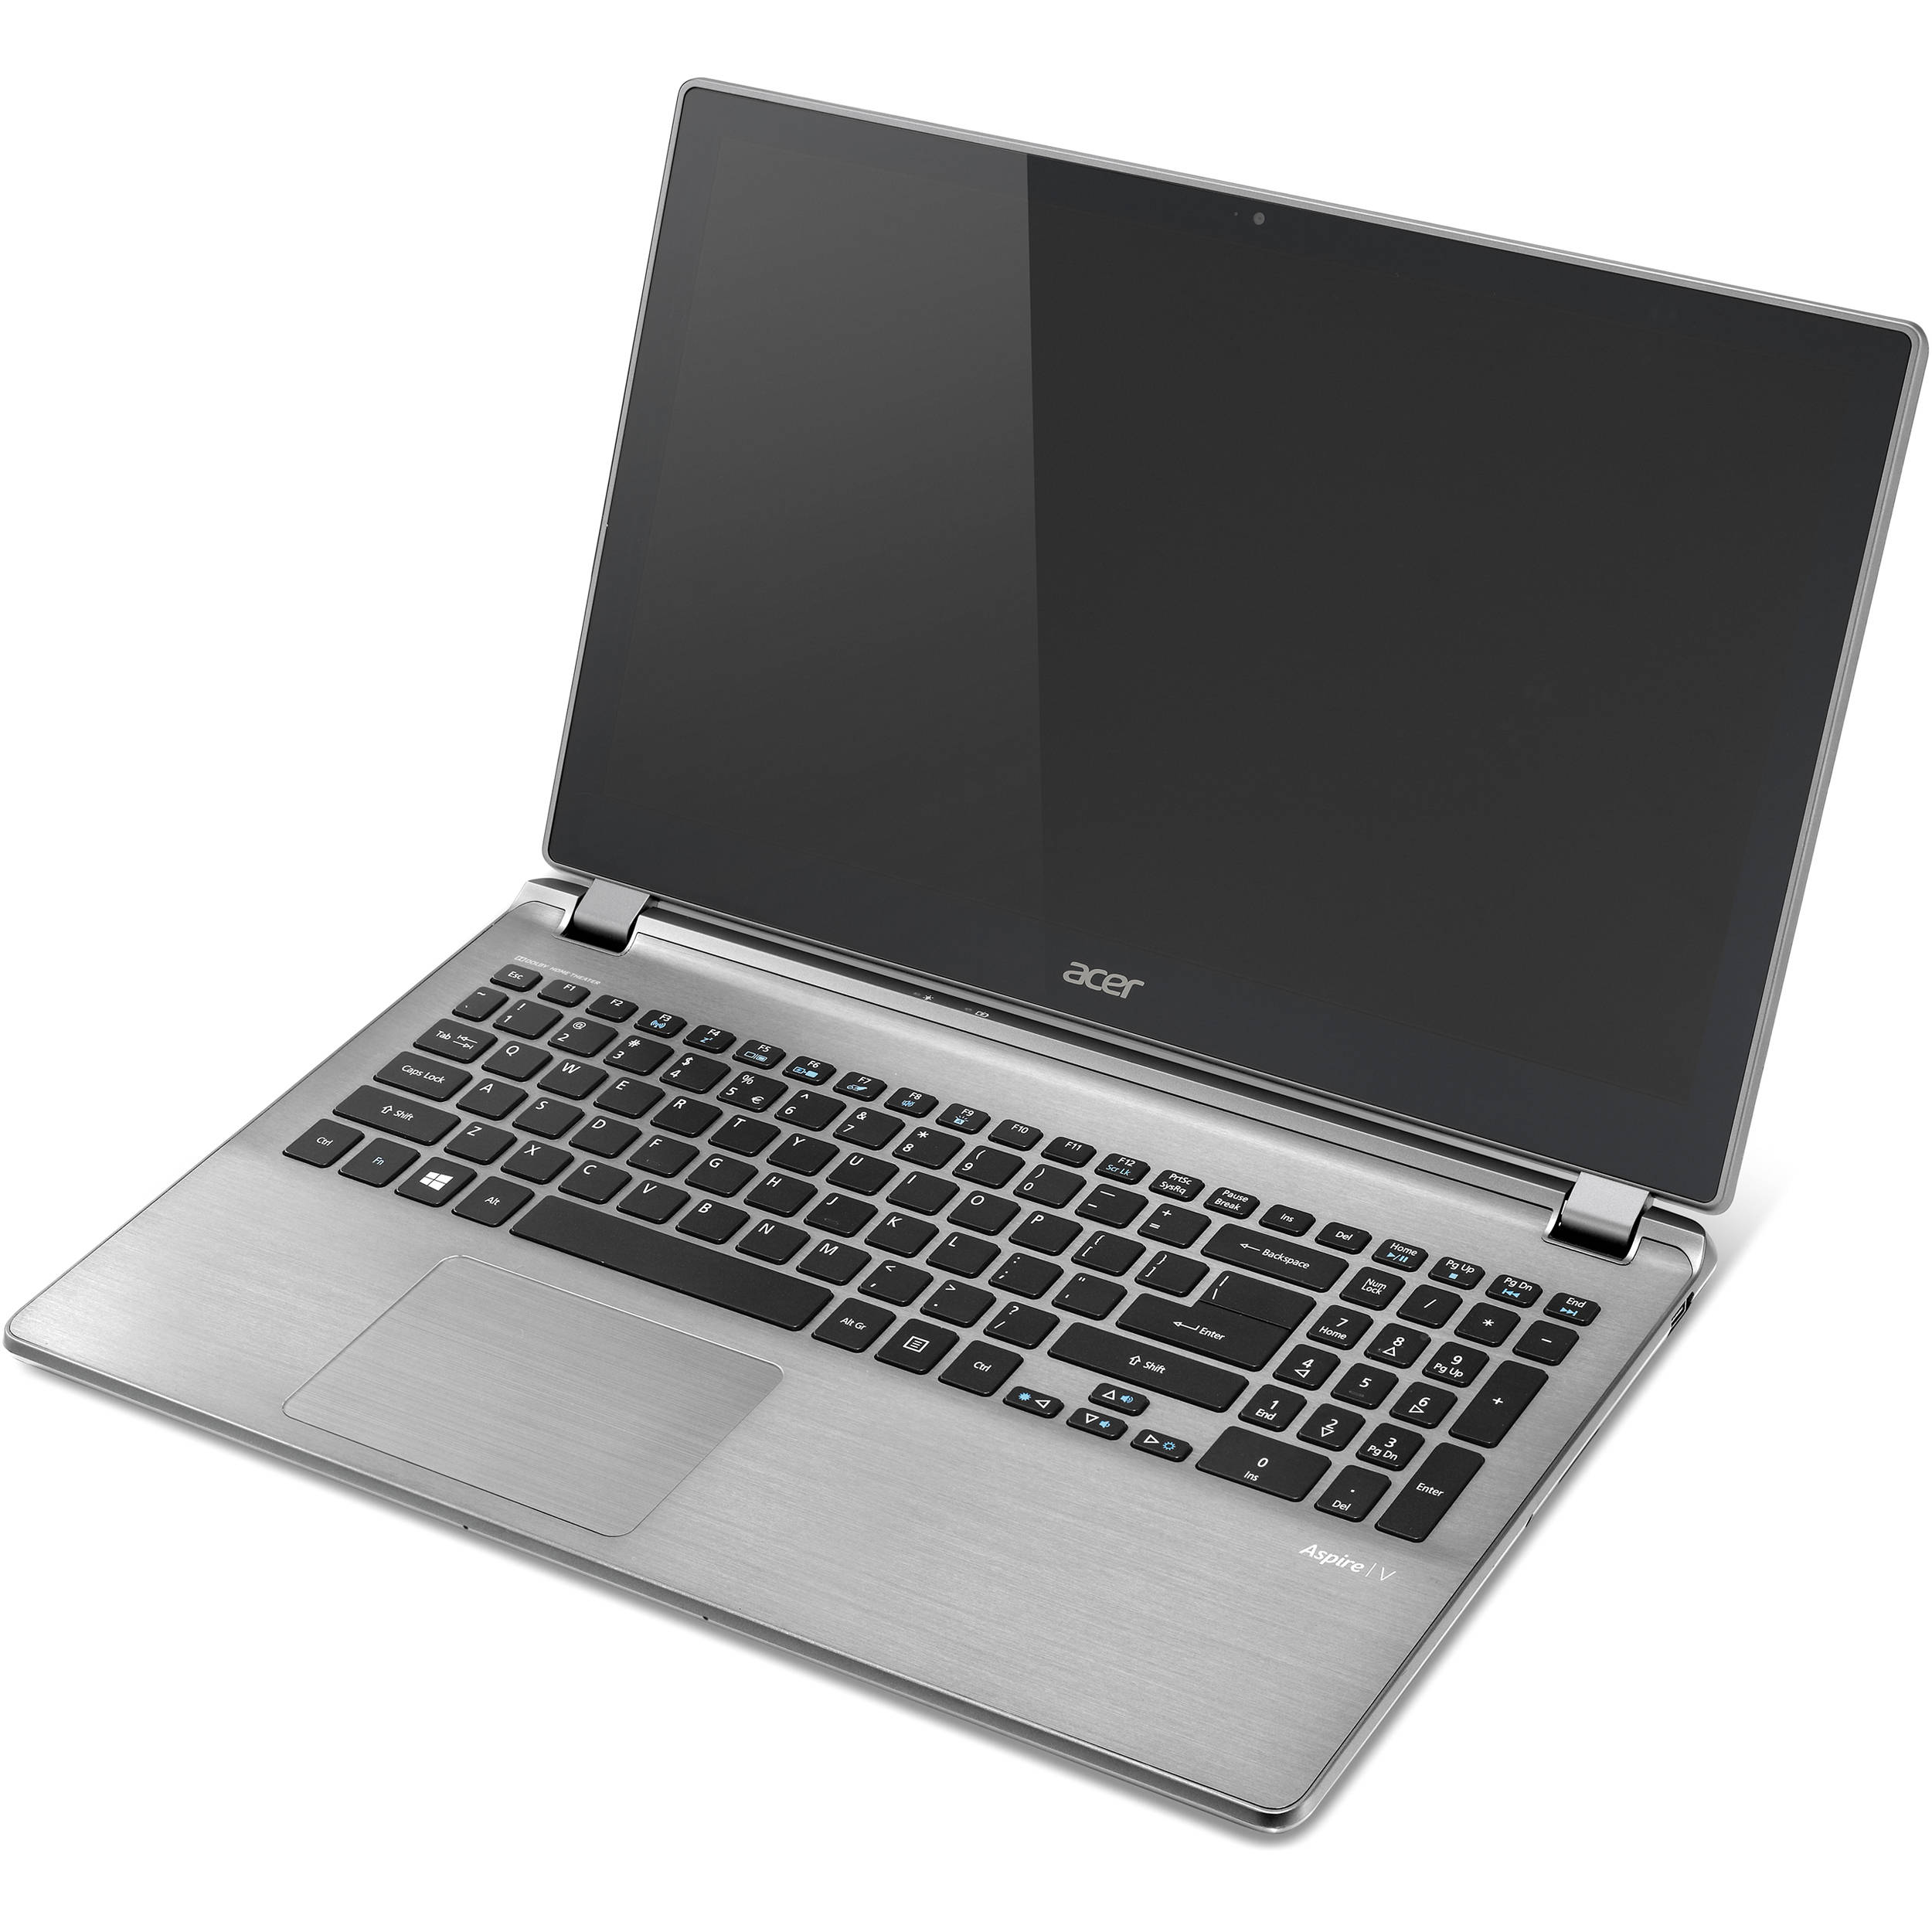 Acer Aspire V7-582PG Now Available